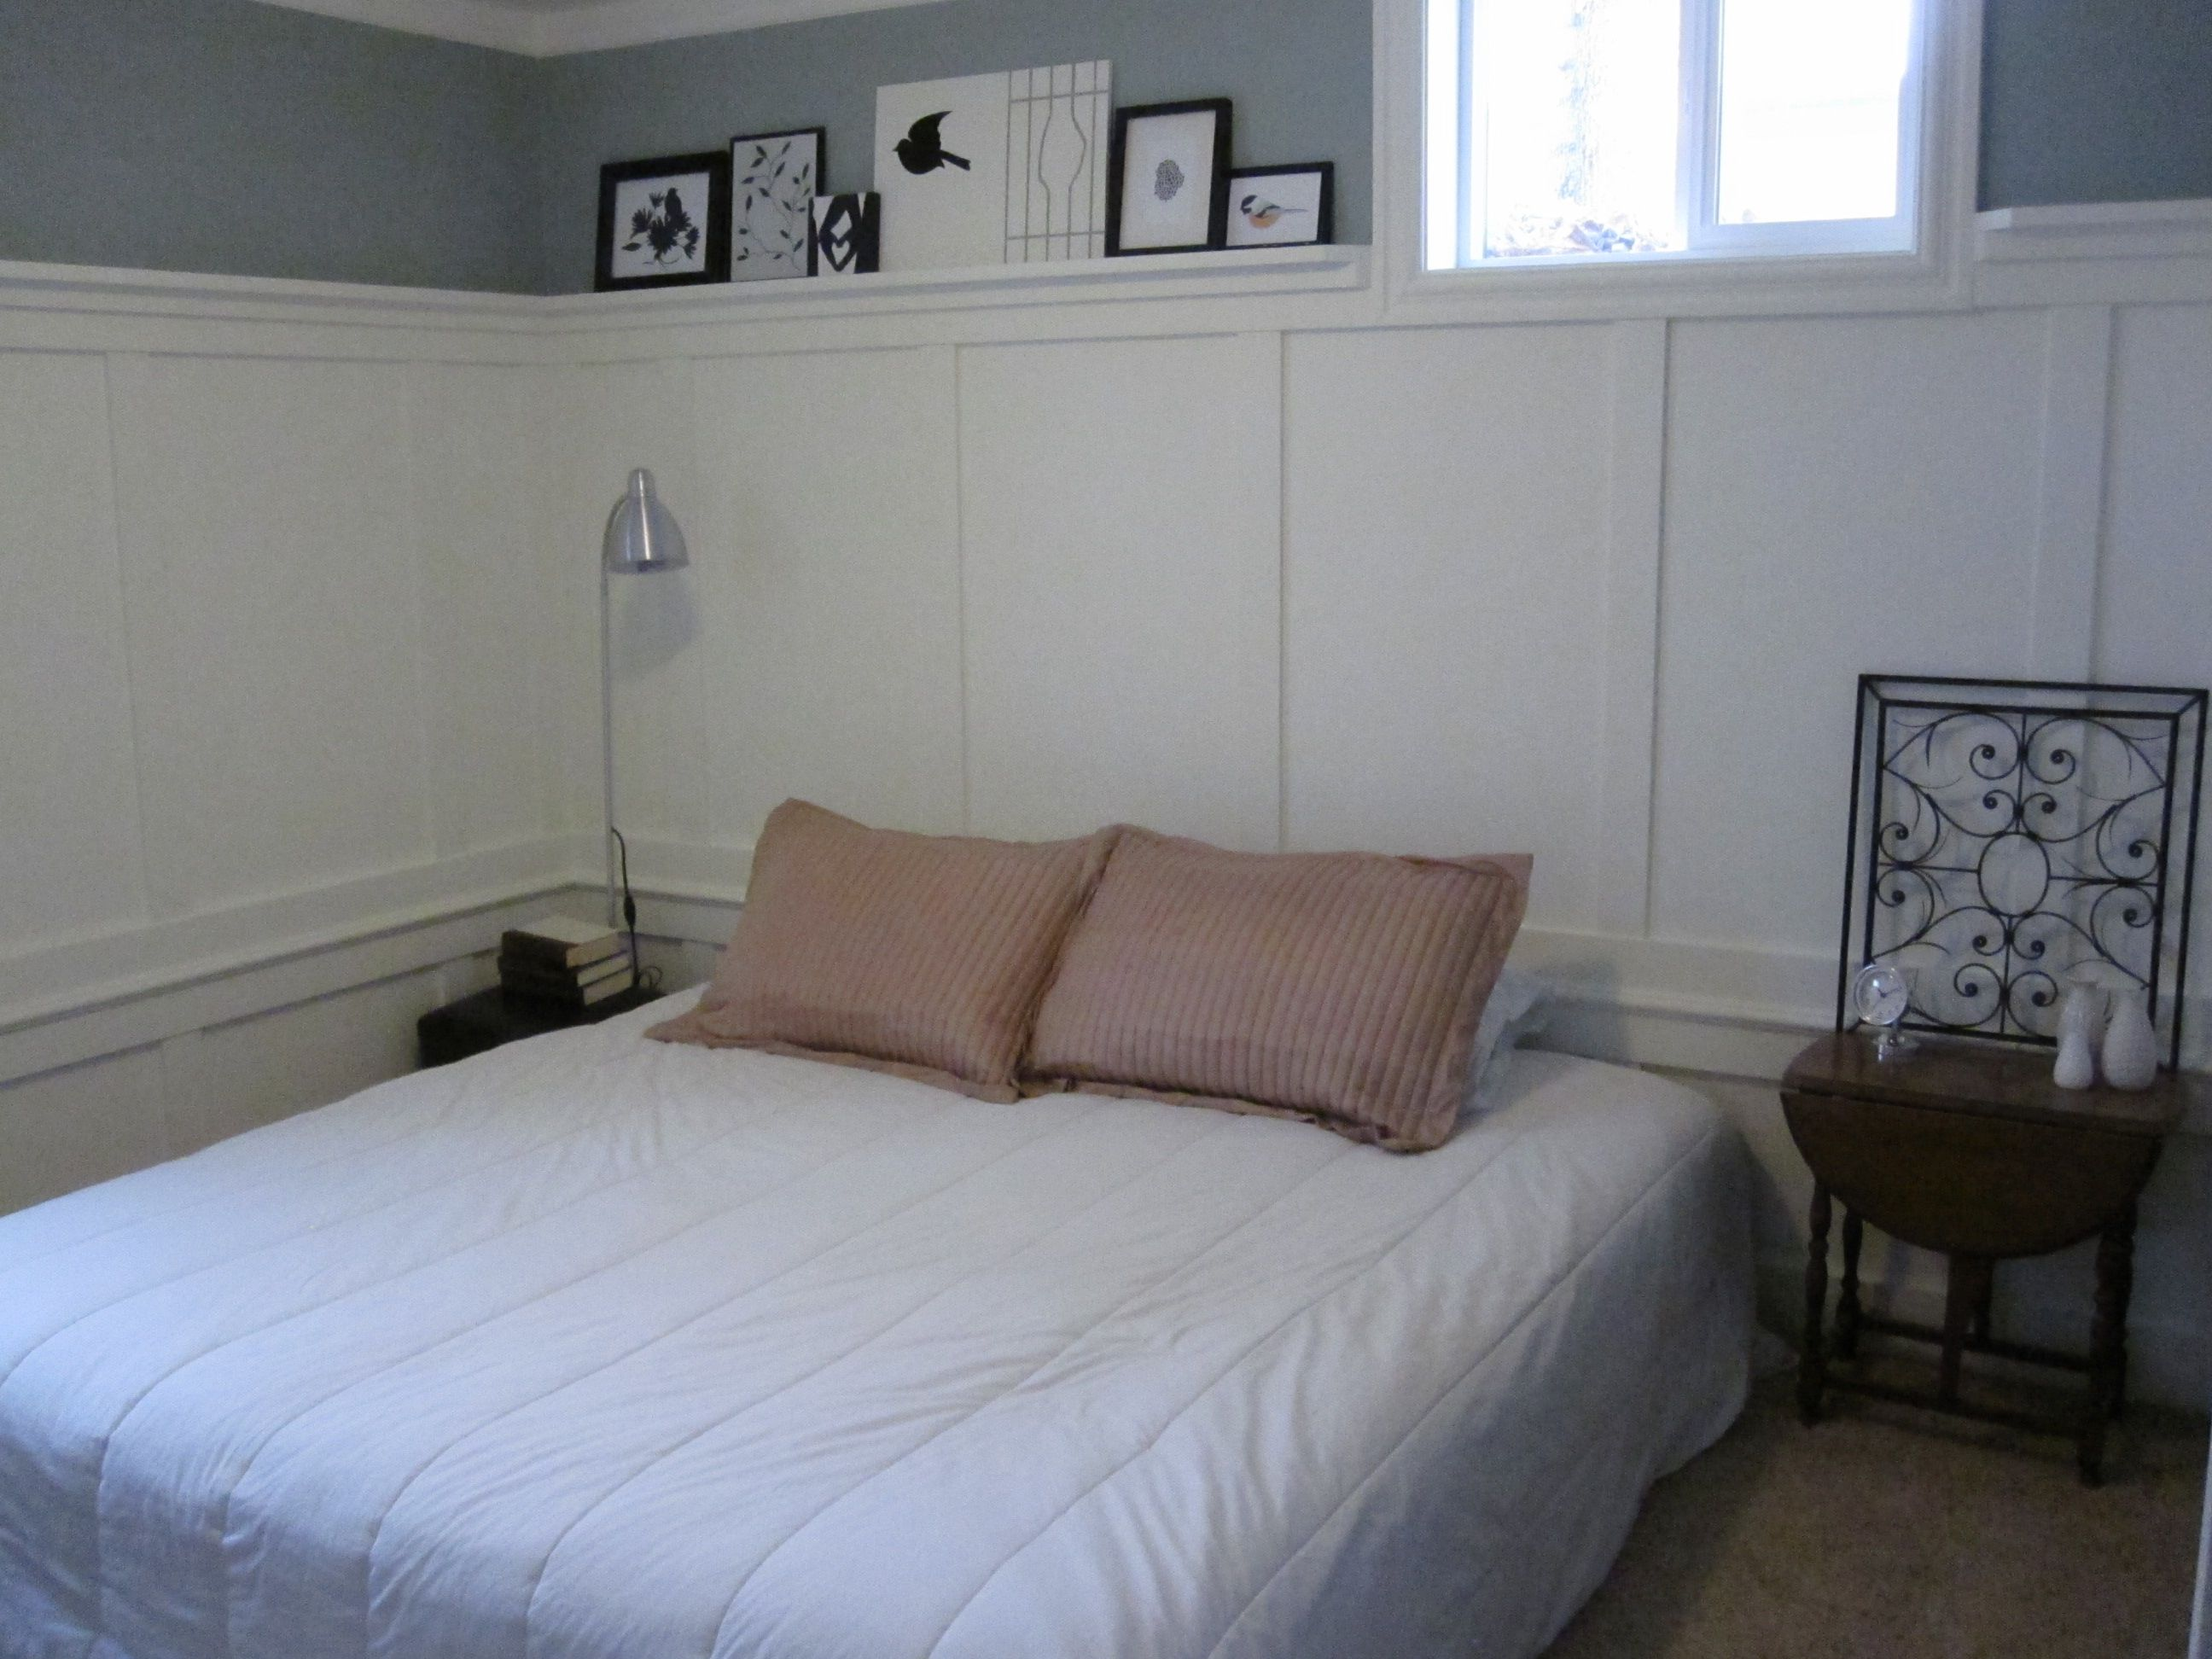 Window headboard ideas  pin by rebecca krausewatts on my bedroom  pinterest  bedrooms